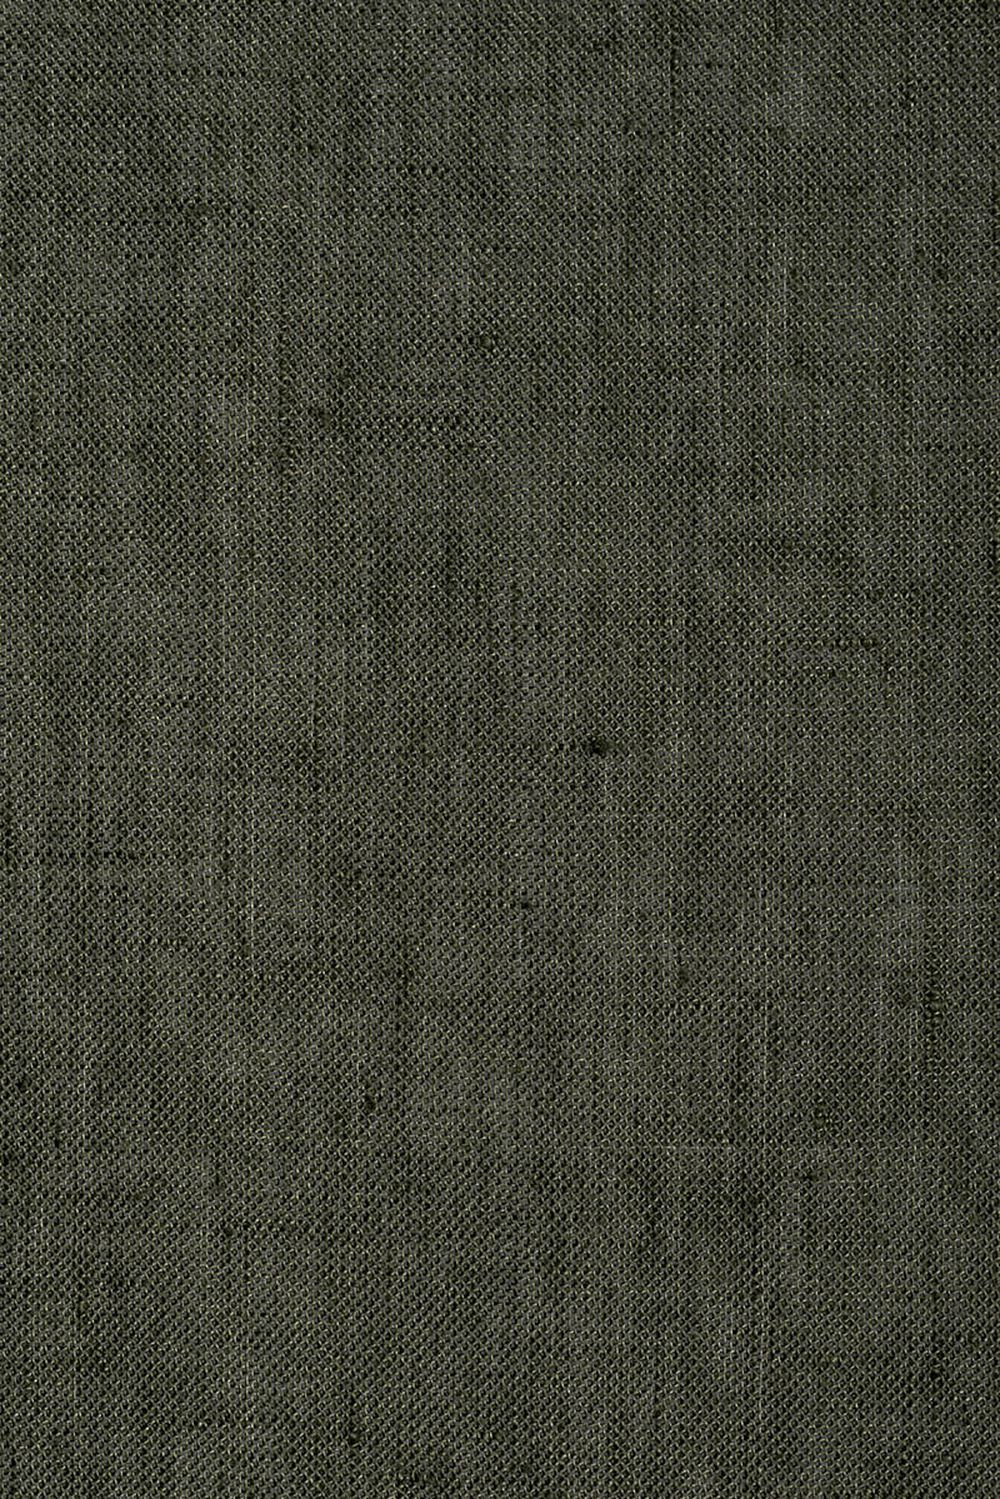 Photo of the fabric Kanso Stonewash Moss swatch by Mokum. Use for Curtains. Style of Plain